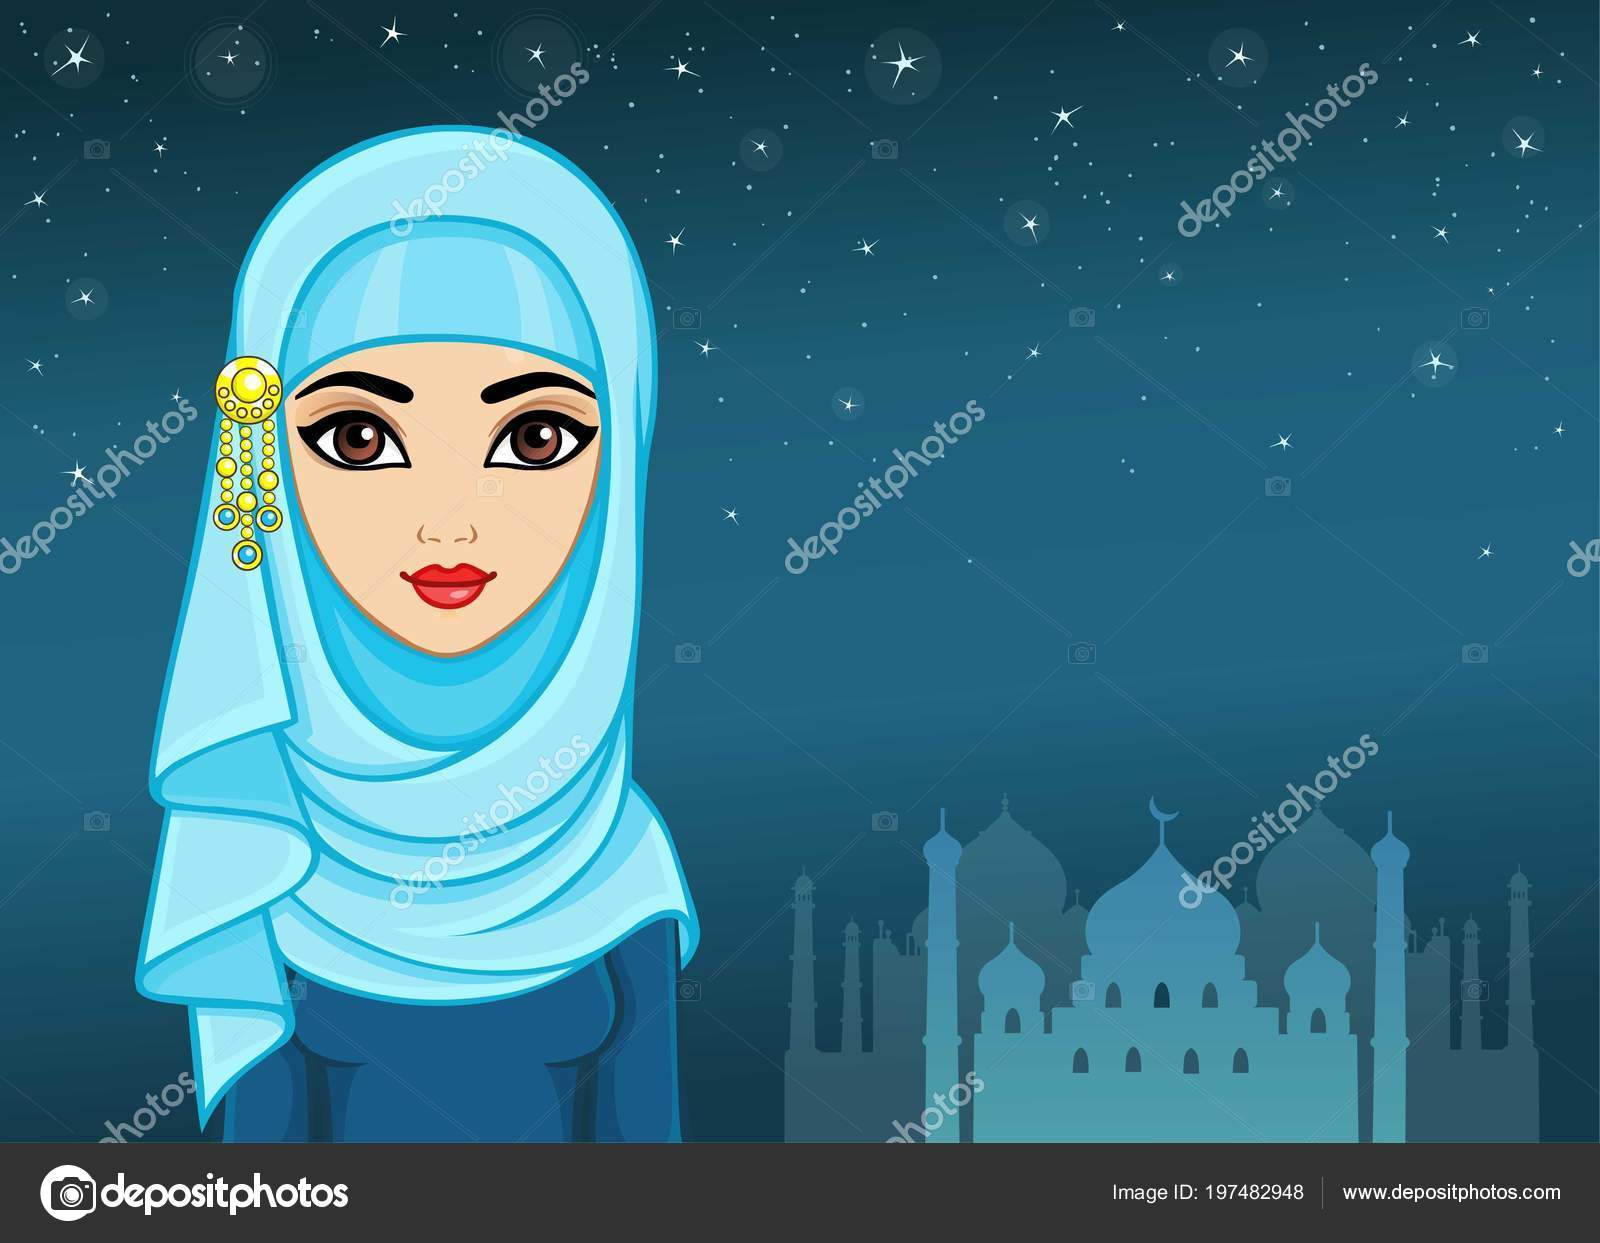 Ready in ai, svg, eps or psd. Arab Night Animation Portrait Beautiful Girl Hijab Background Night Star Stock Vector Image By C Roomyana 197482948